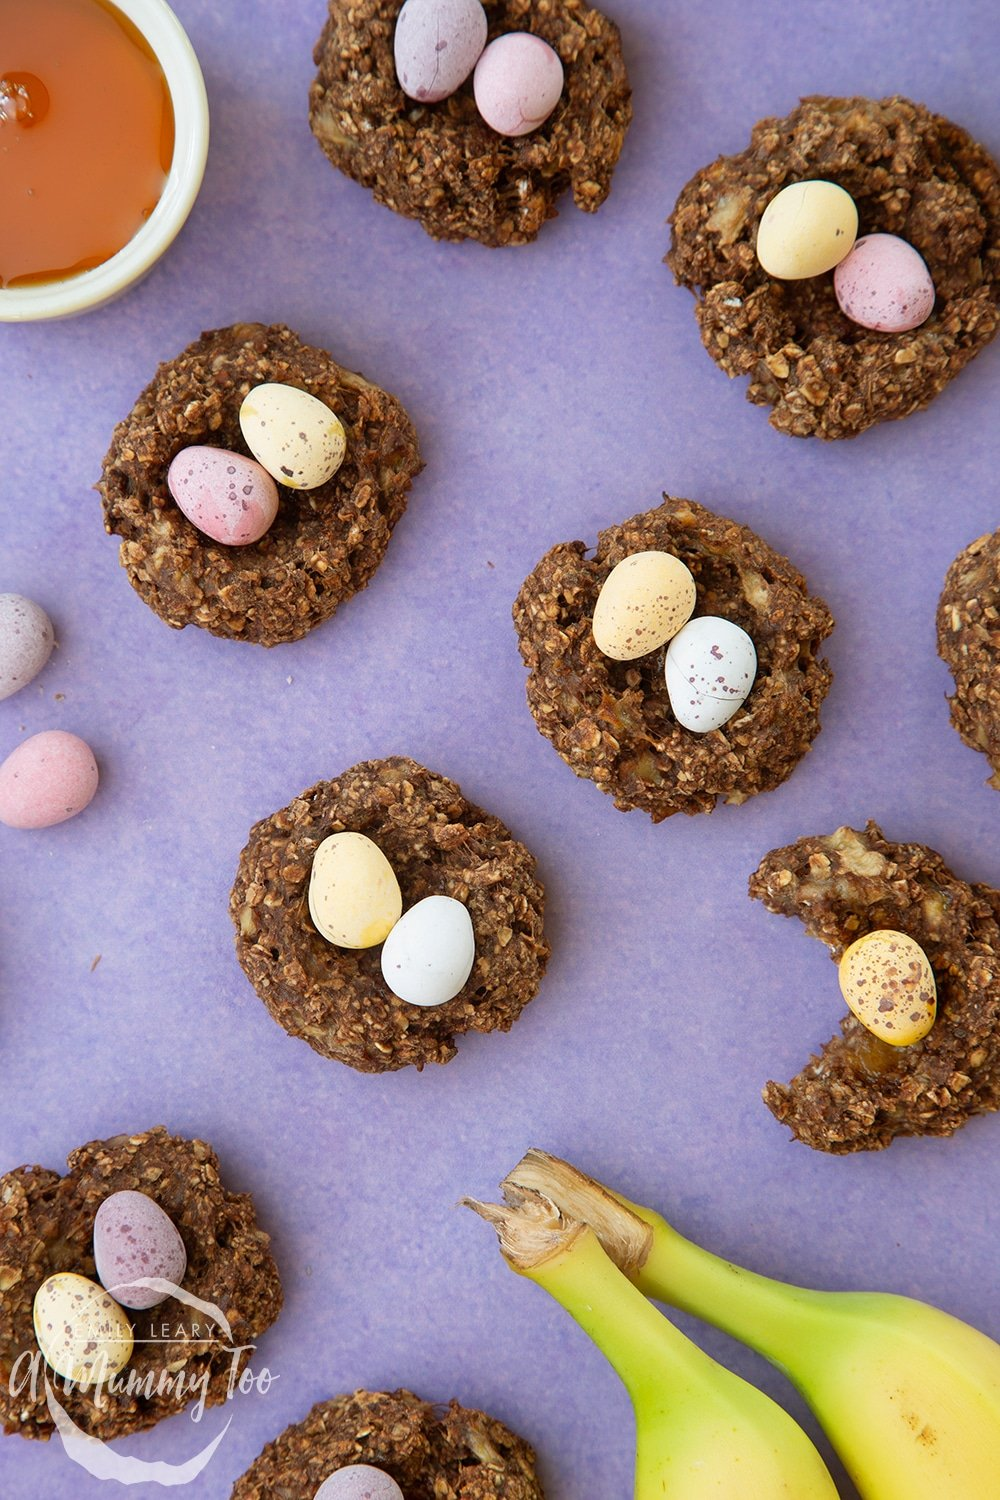 Healthier Easter chocolate nest cookies topped with mini chocolate eggs